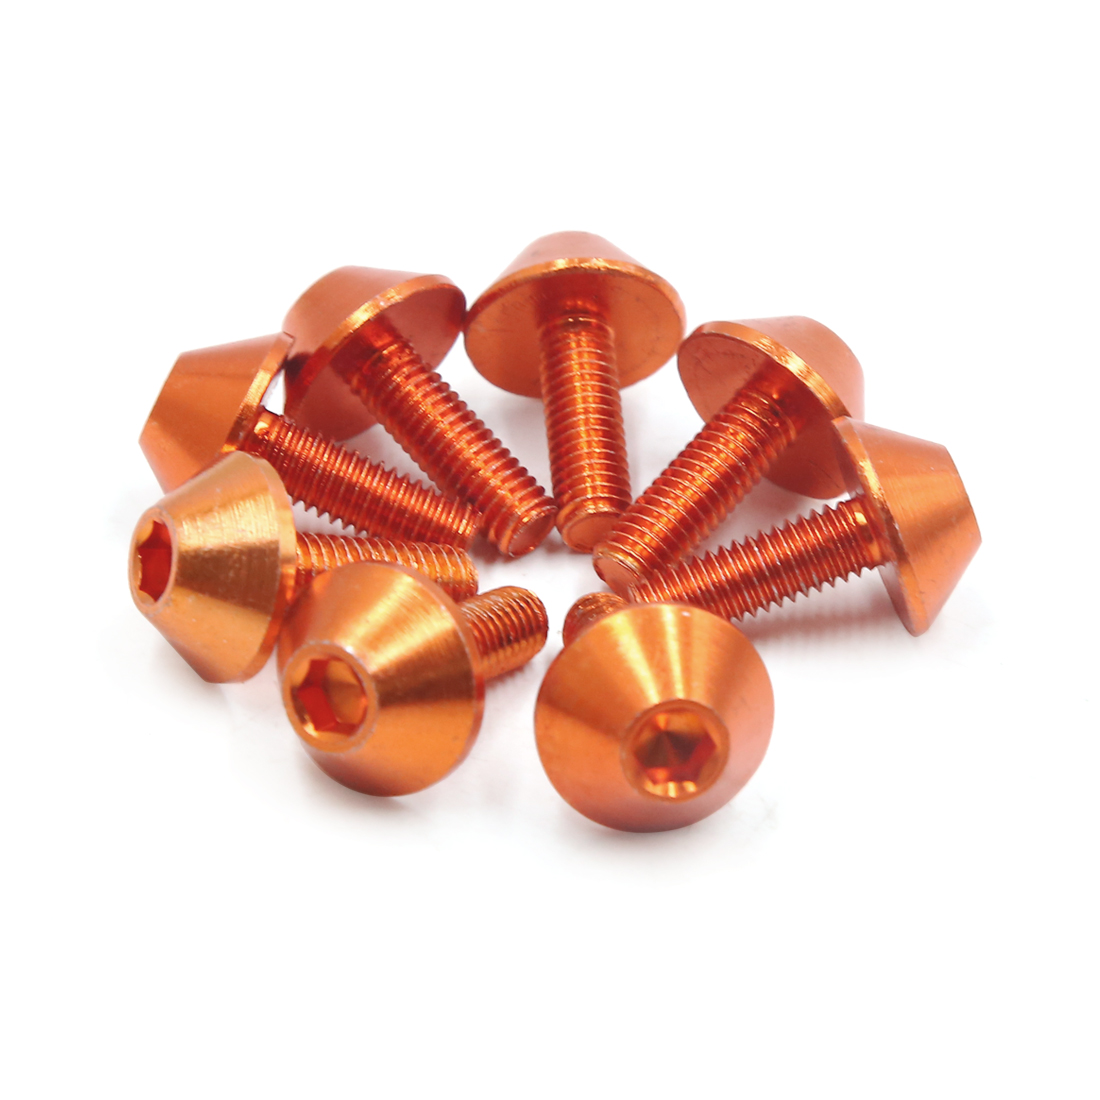 8pcs Orange Aluminum Alloy Motorcycle Car Hex Socket Bolts Screws M6 x 18